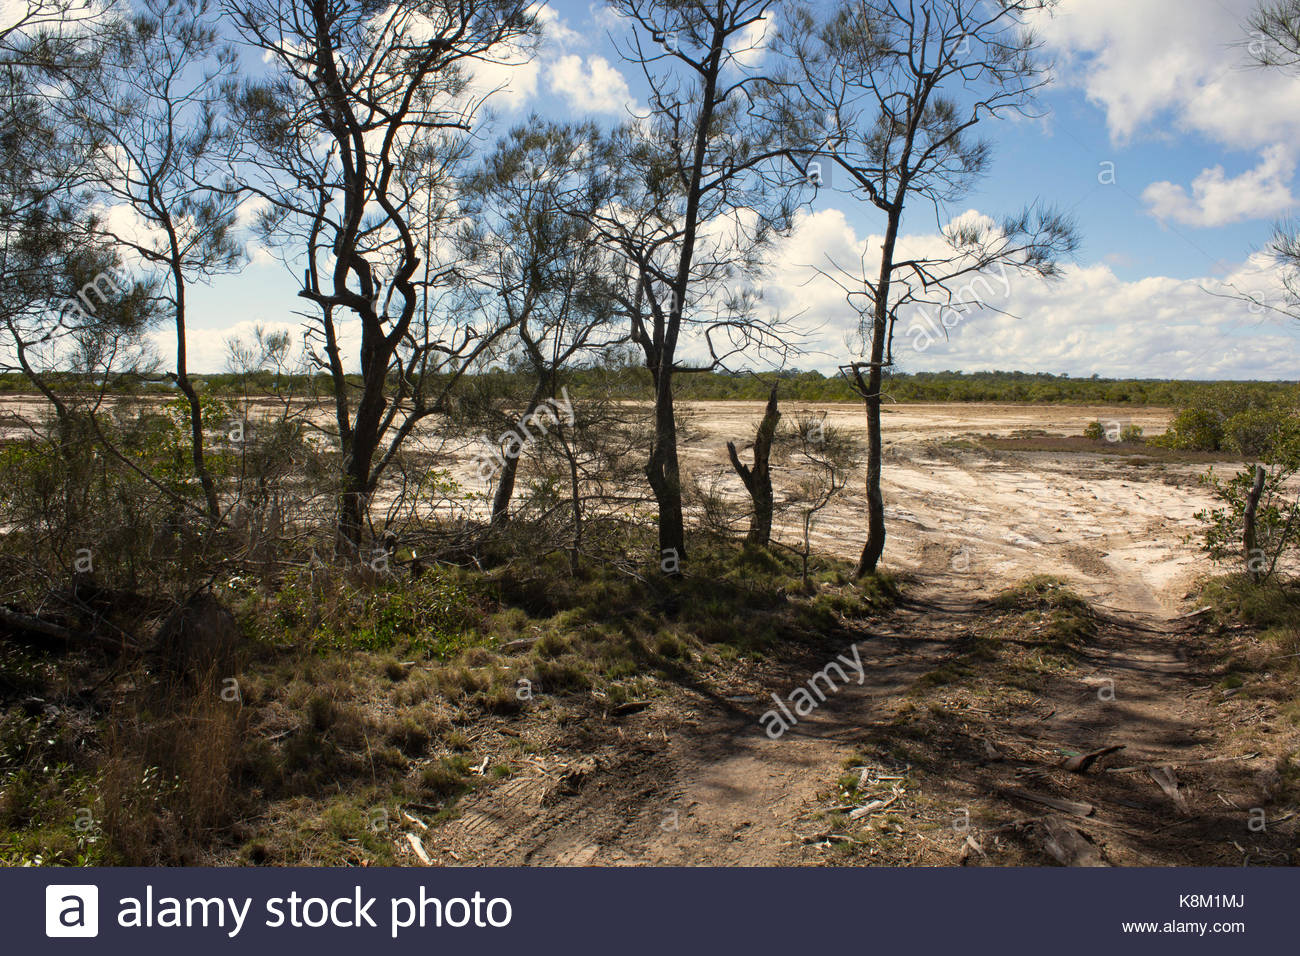 A bush track leading onto a salt pan where vehicles often dive over small plants and cause environmental damage. - Stock Image